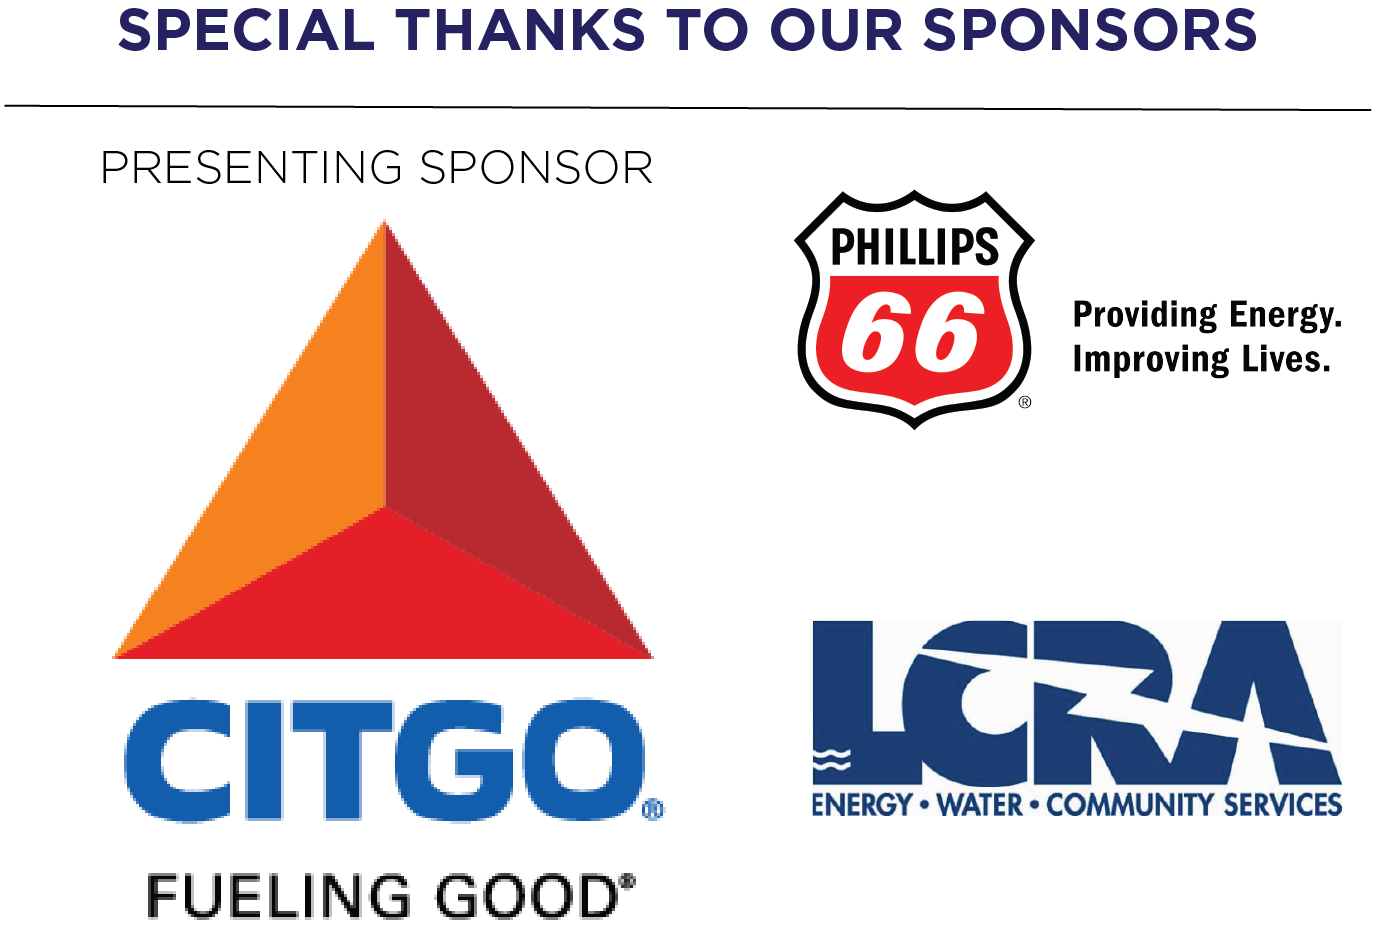 Special Thanks to our Sponsors: Presenting Sponsor - CITGO, Phillips 66, LCRA